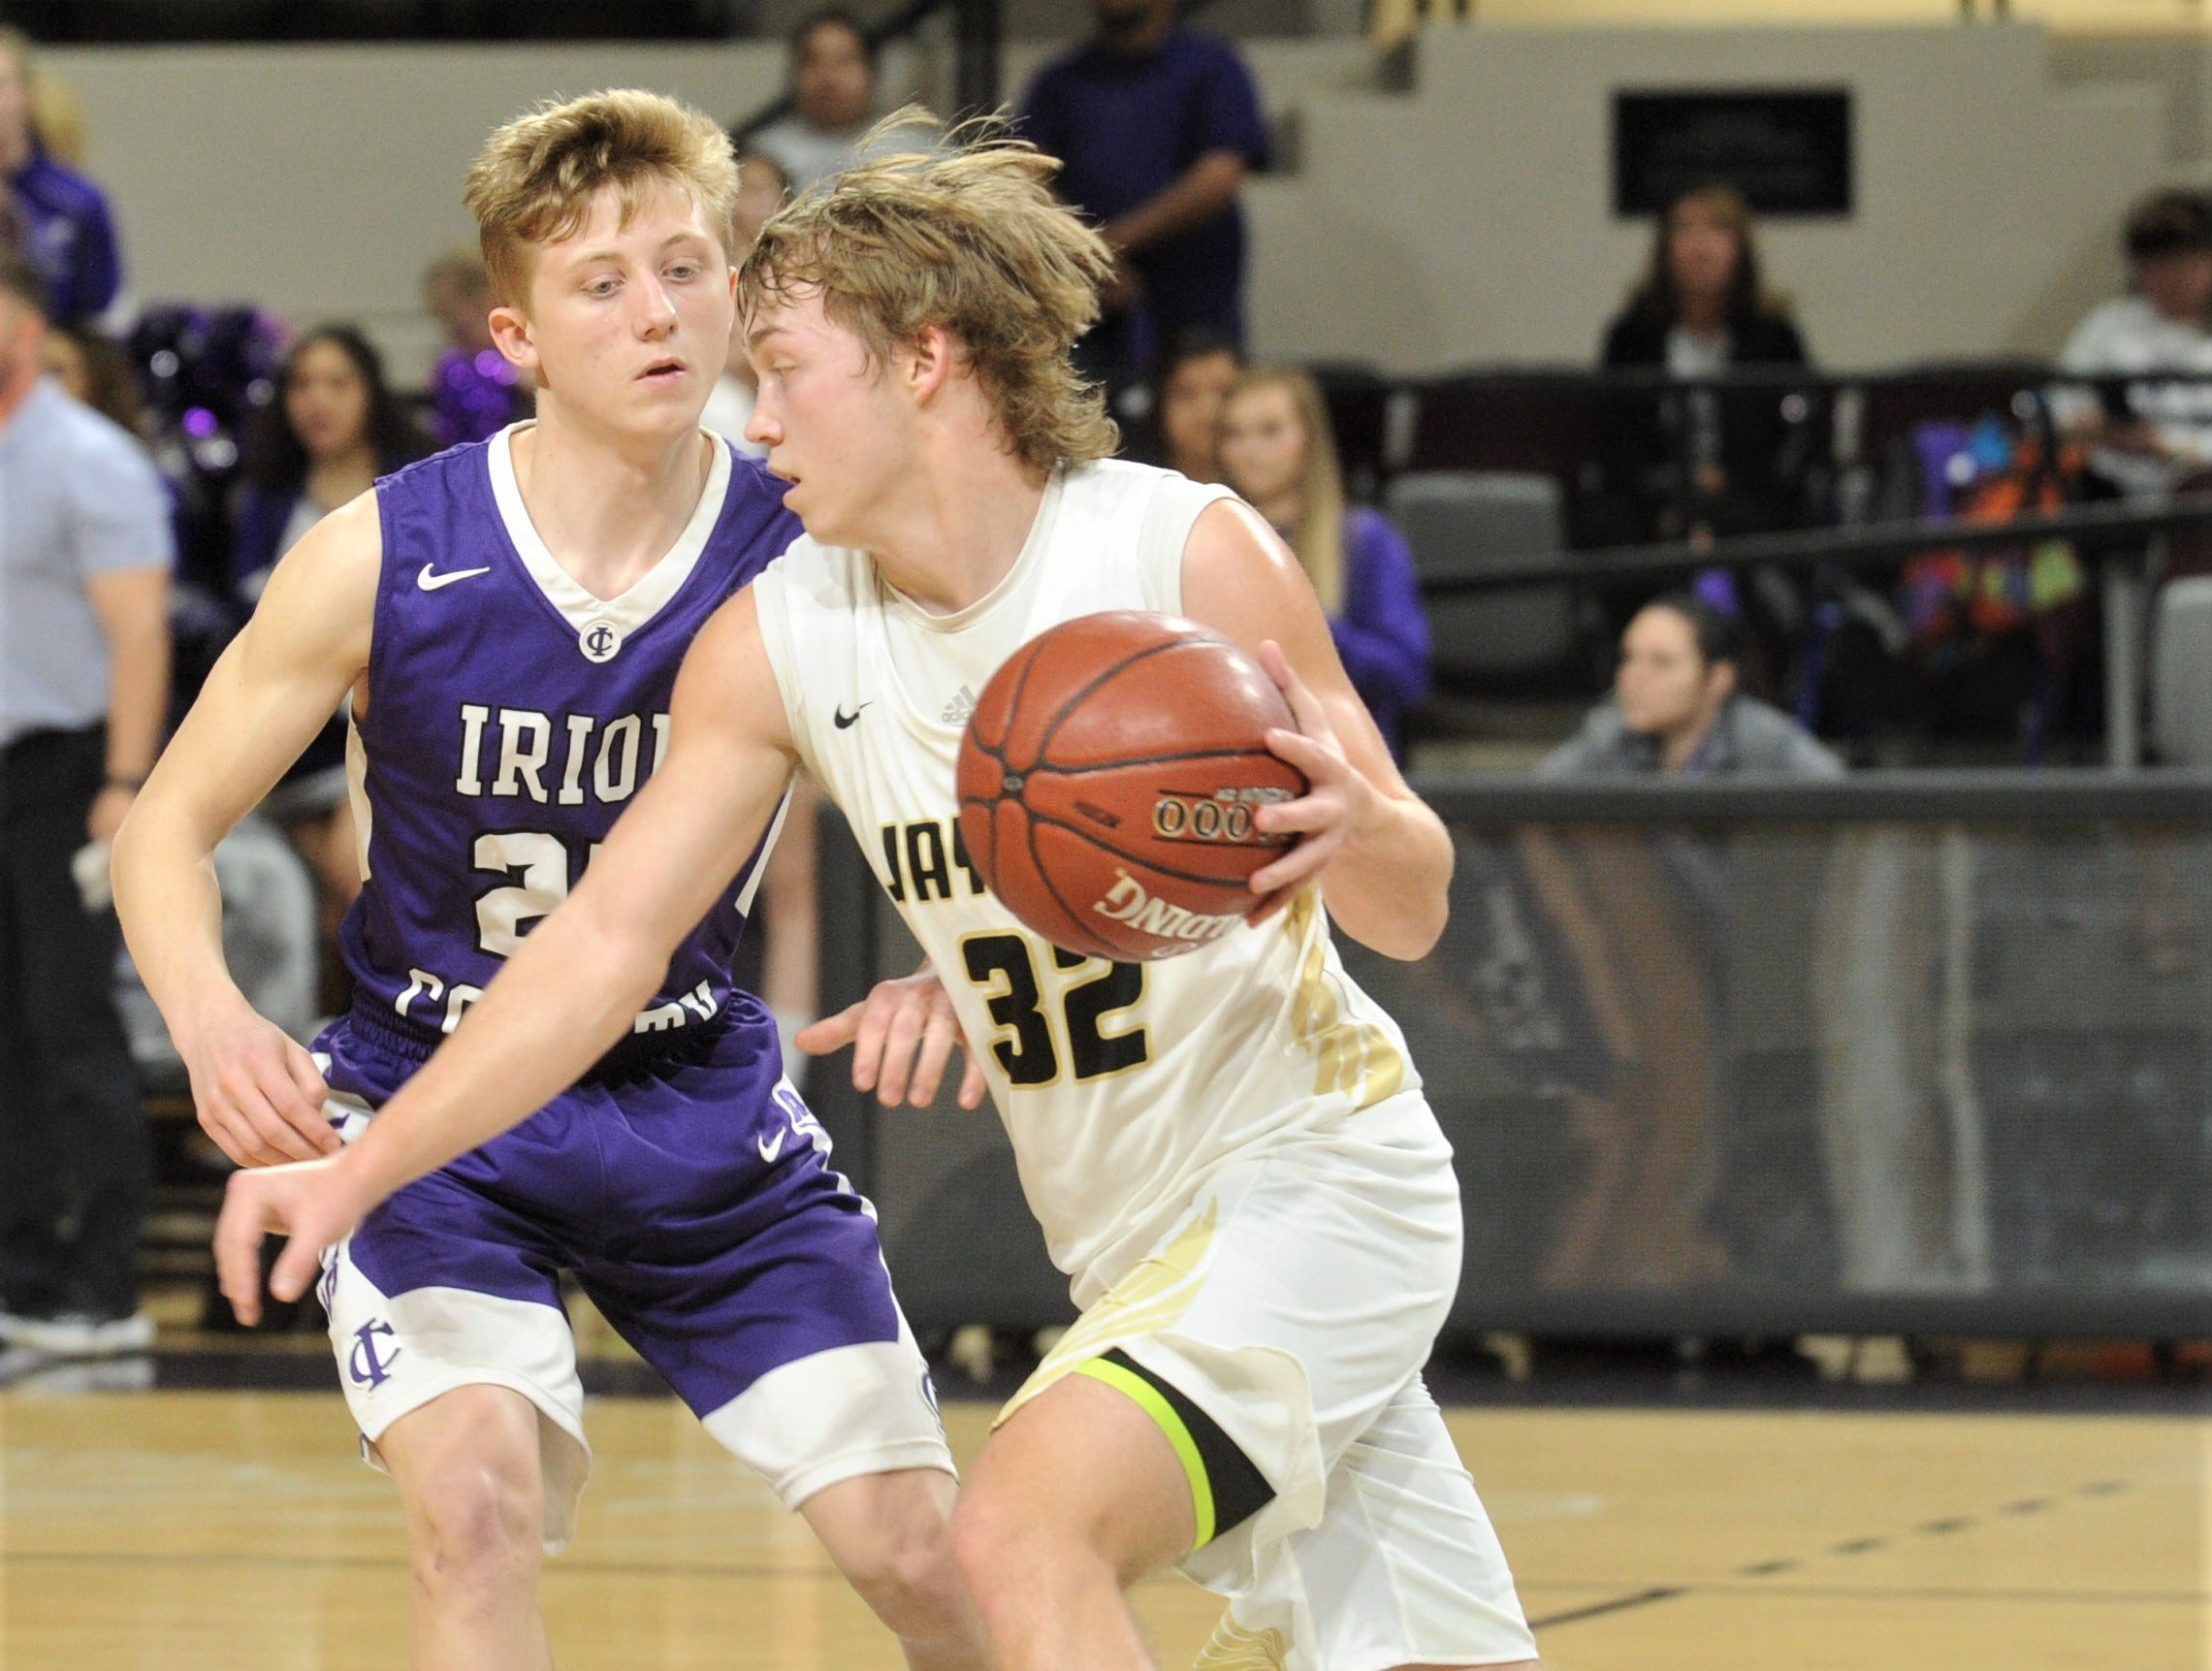 Jayton's Tye Scogin, right, drives past Irion County's Riley Gryder. The Jaybirds beat Irion County 47-32 in the Region II-1A championship game Saturday, March 2, 2019, at Abilene Christian's Moody Coliseum.